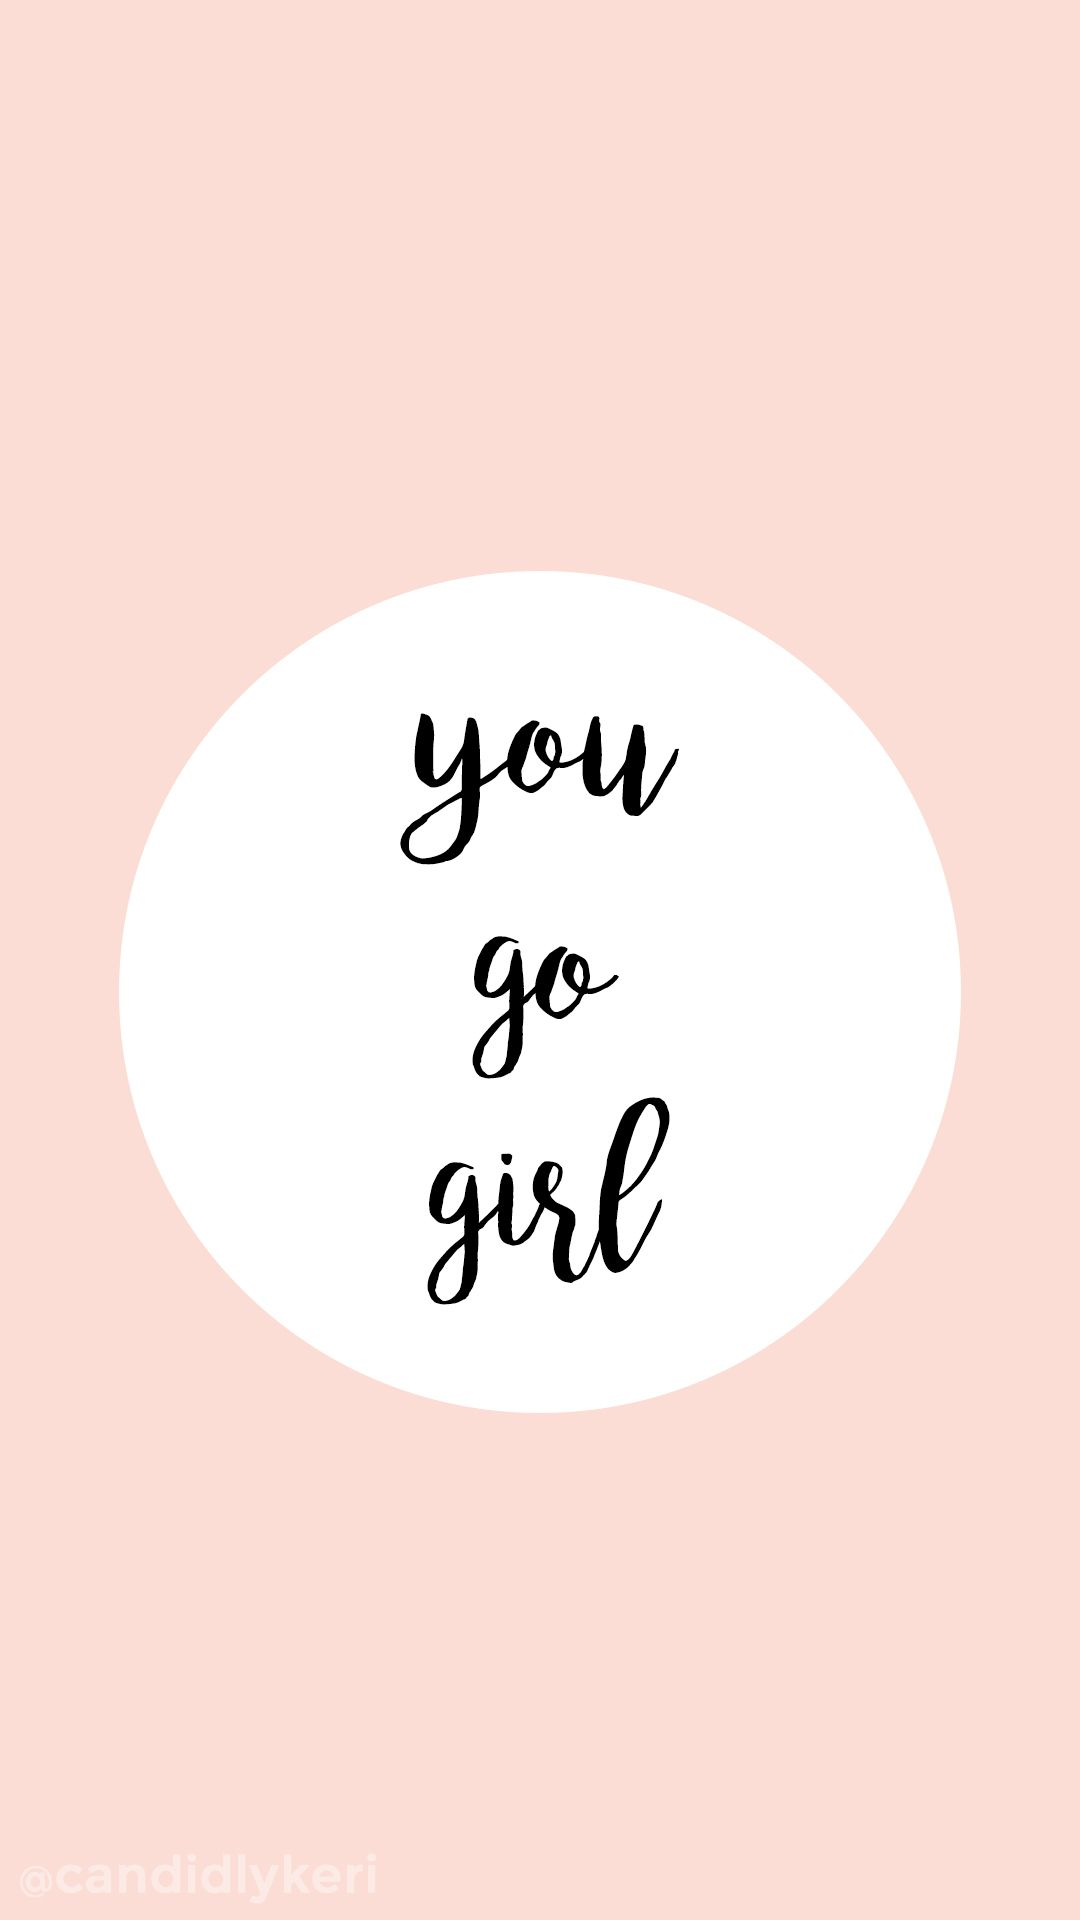 you go girl pink quote inspirational background wallpaper you can download for free on